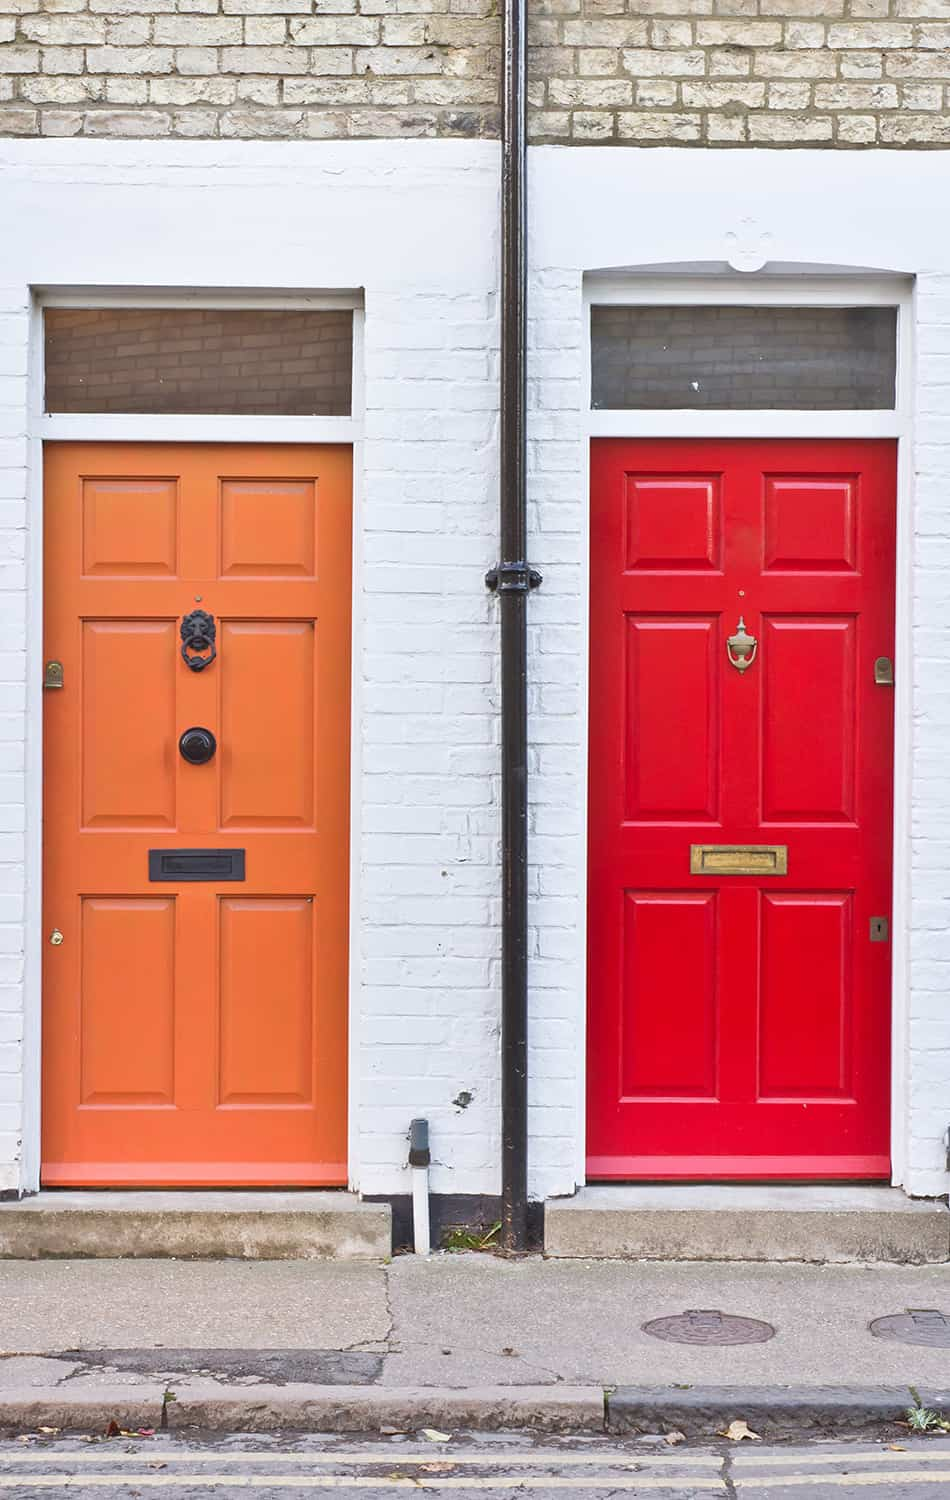 Orange and Red Doors as Matching Pairs